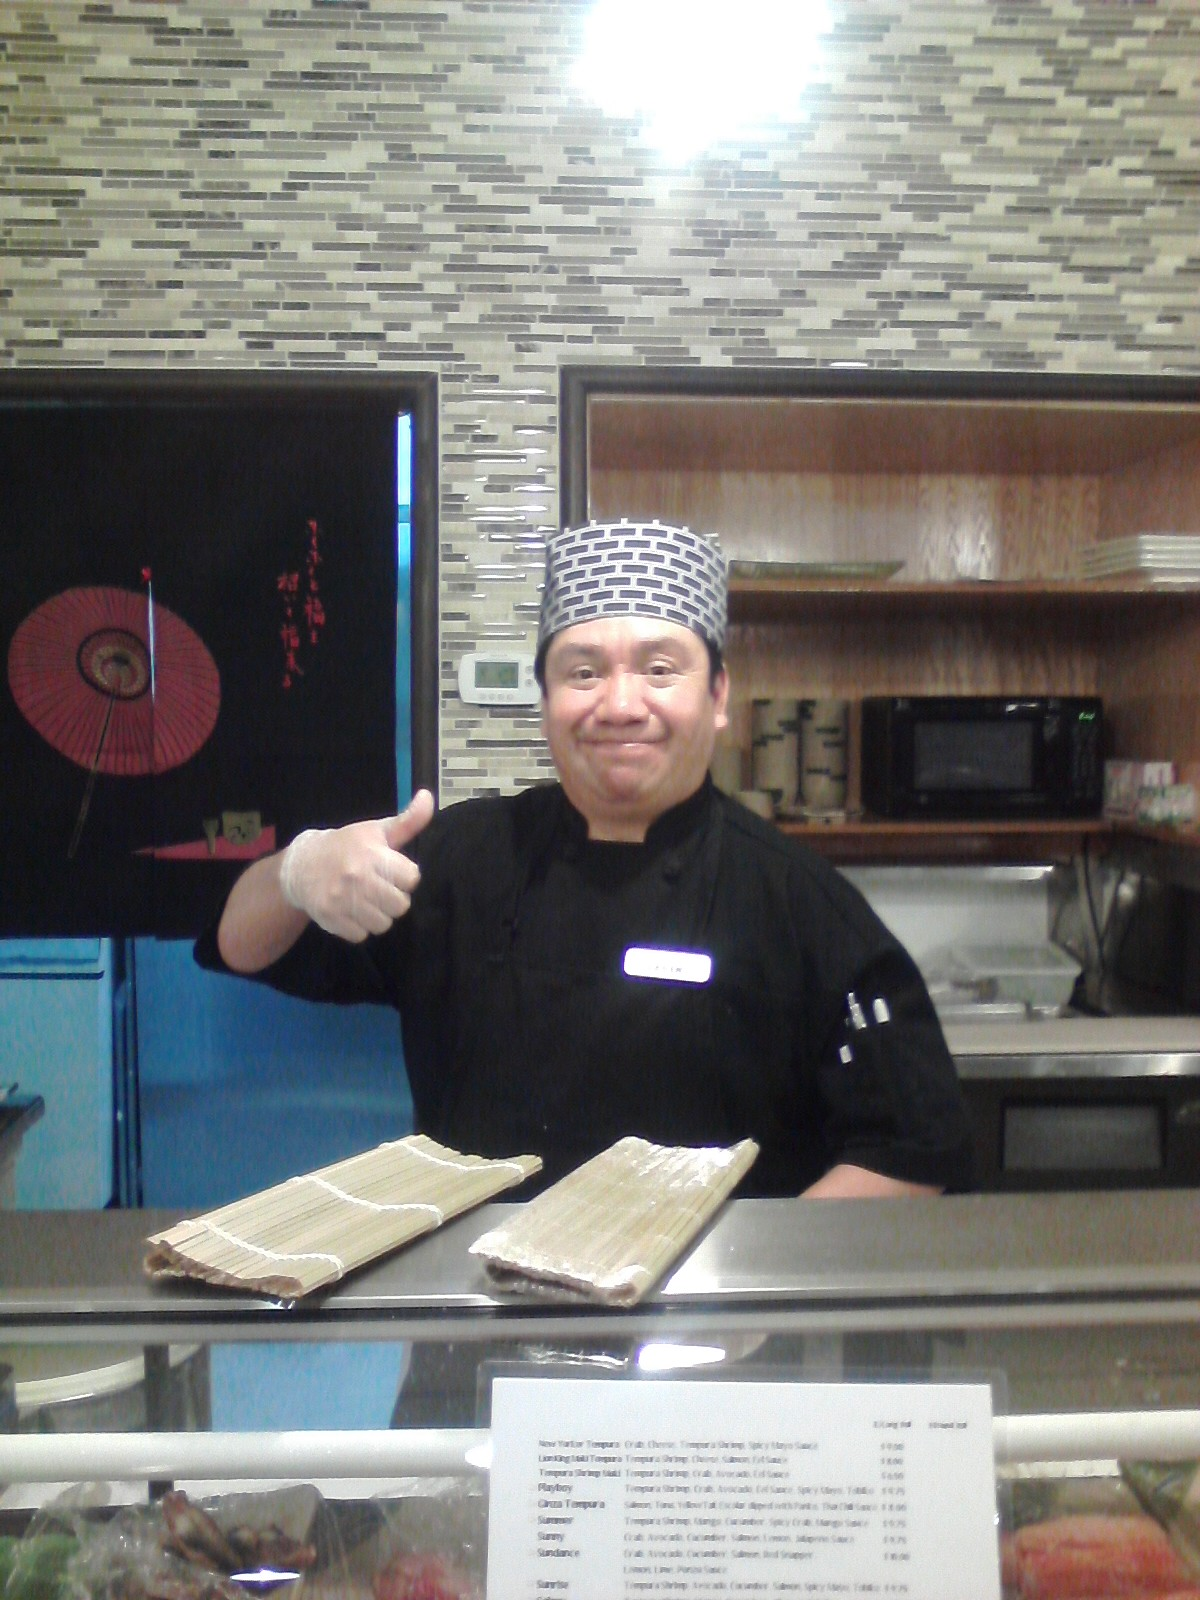 This is Cesar one of the Sushi Chefs. He is from Mexico and also speaks some Japanese.